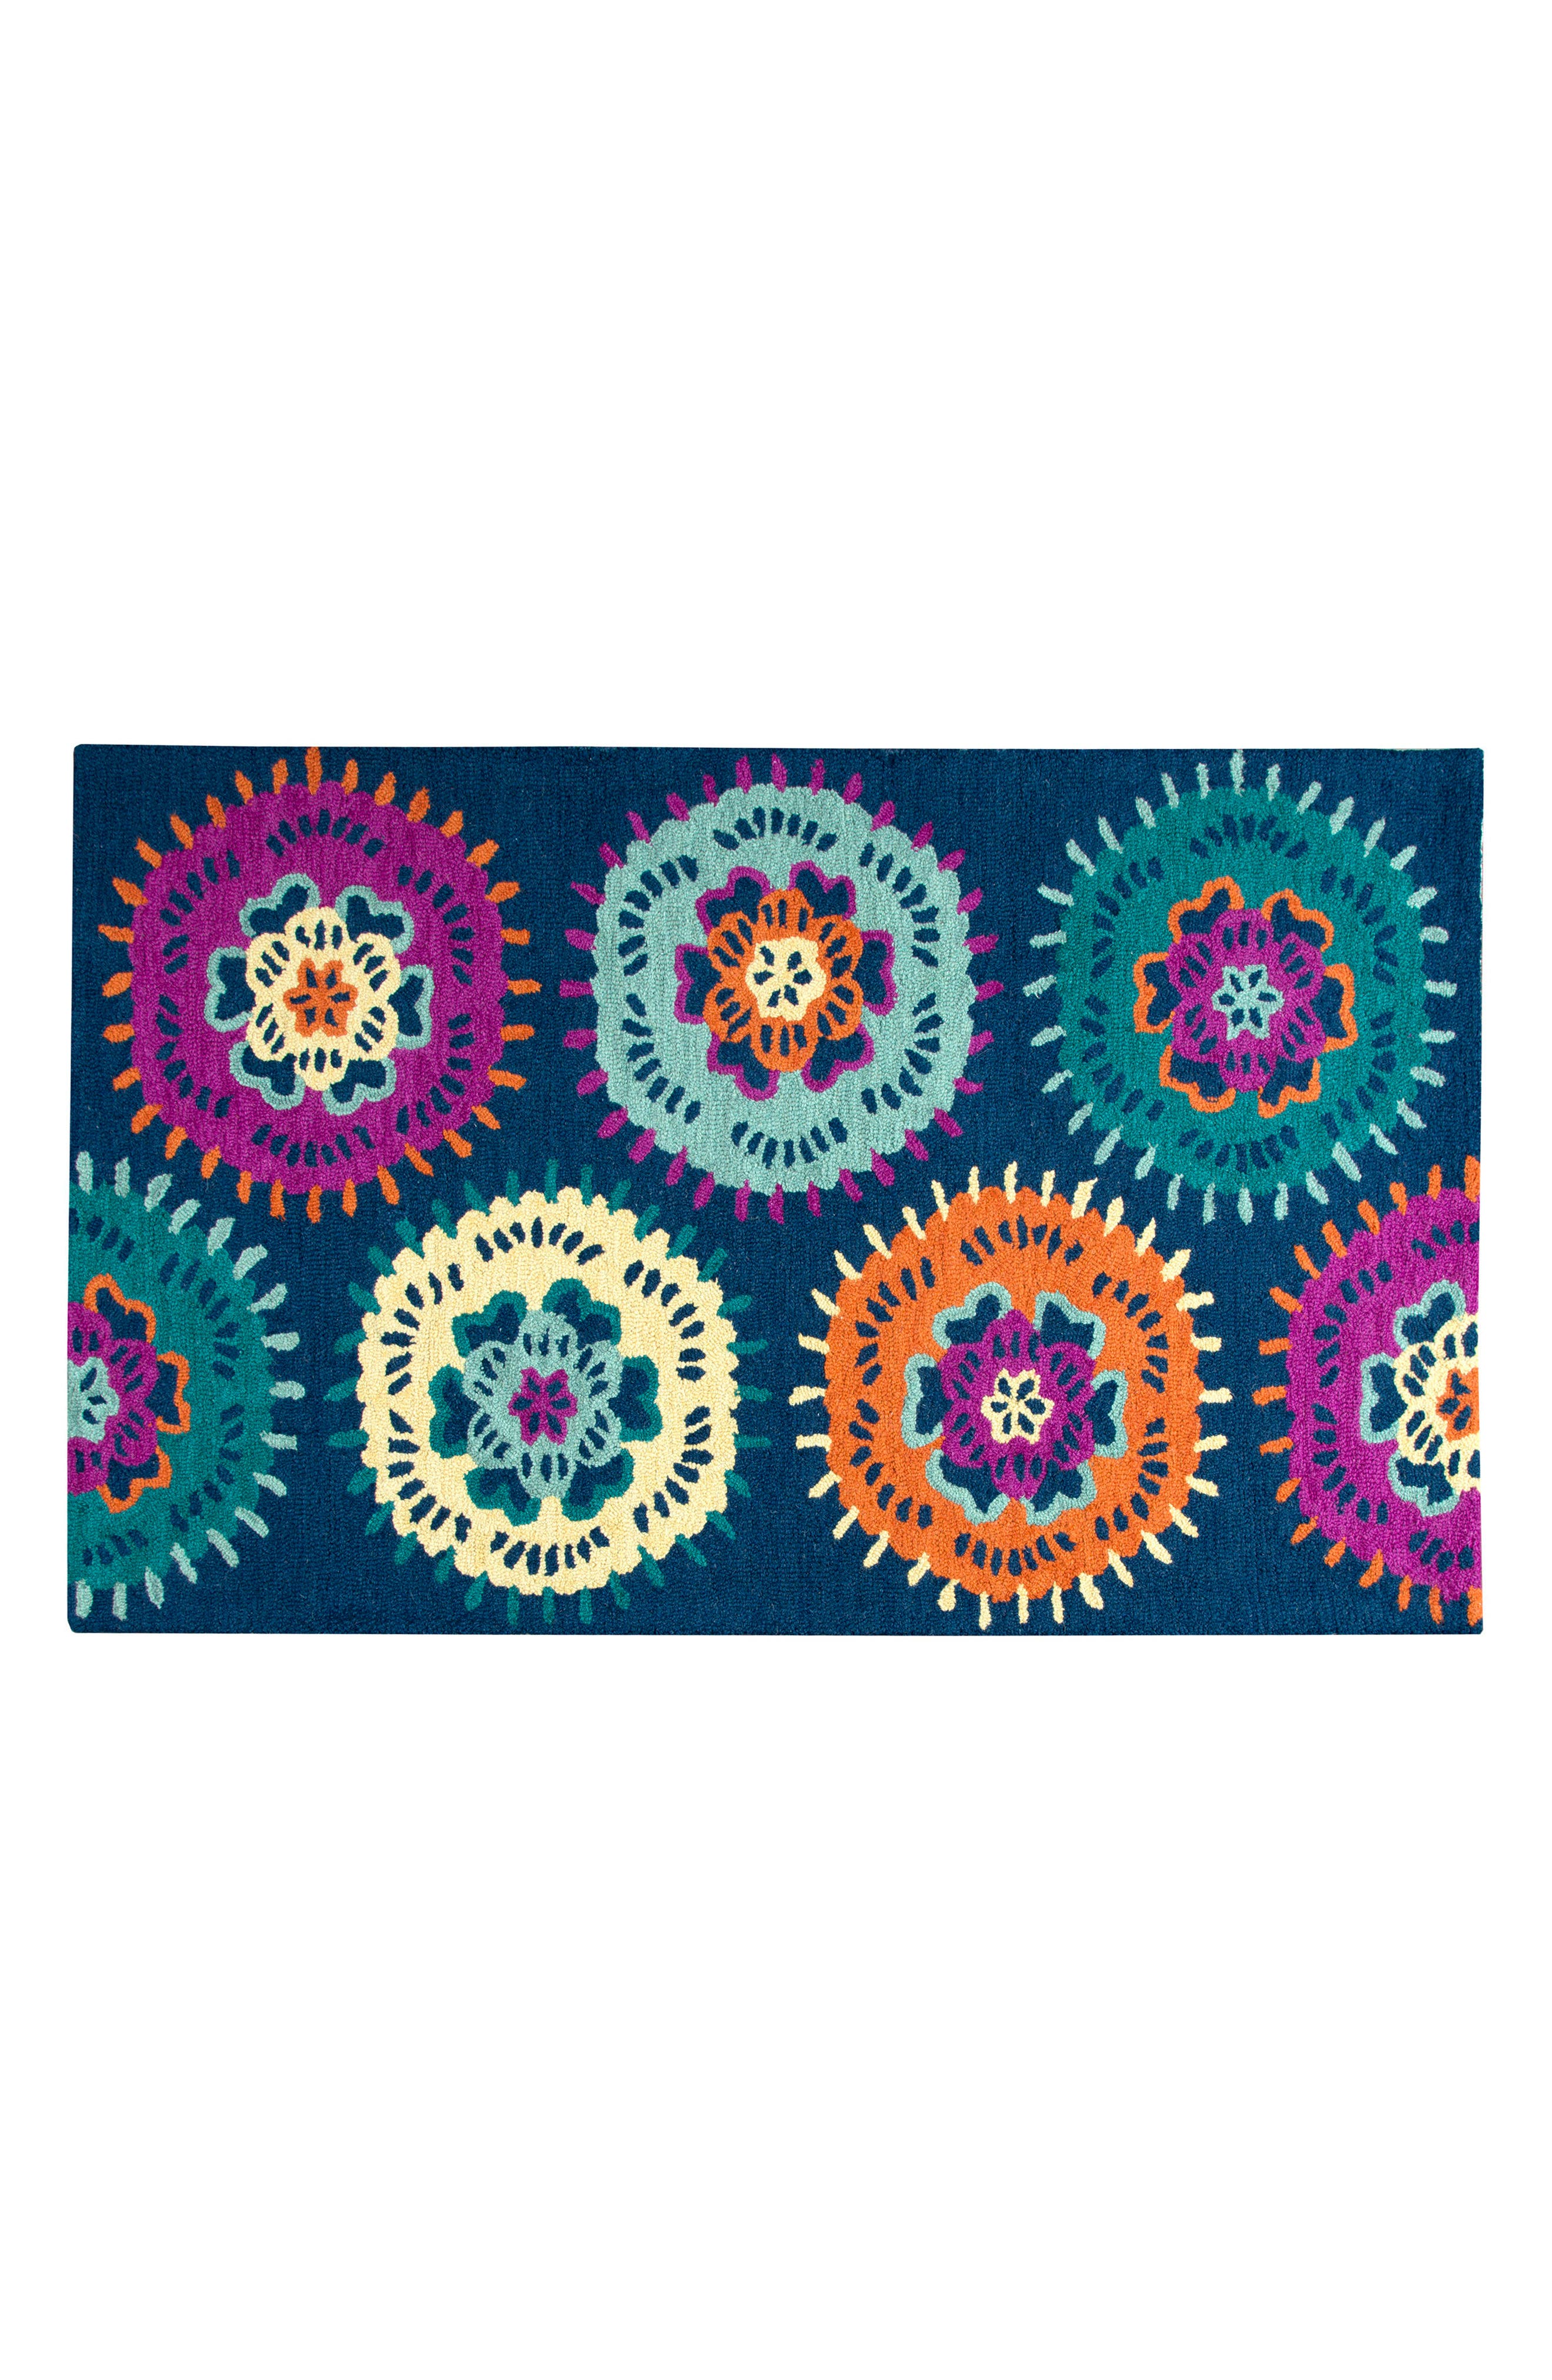 Play Day Flowery Rug,                         Main,                         color, Navy